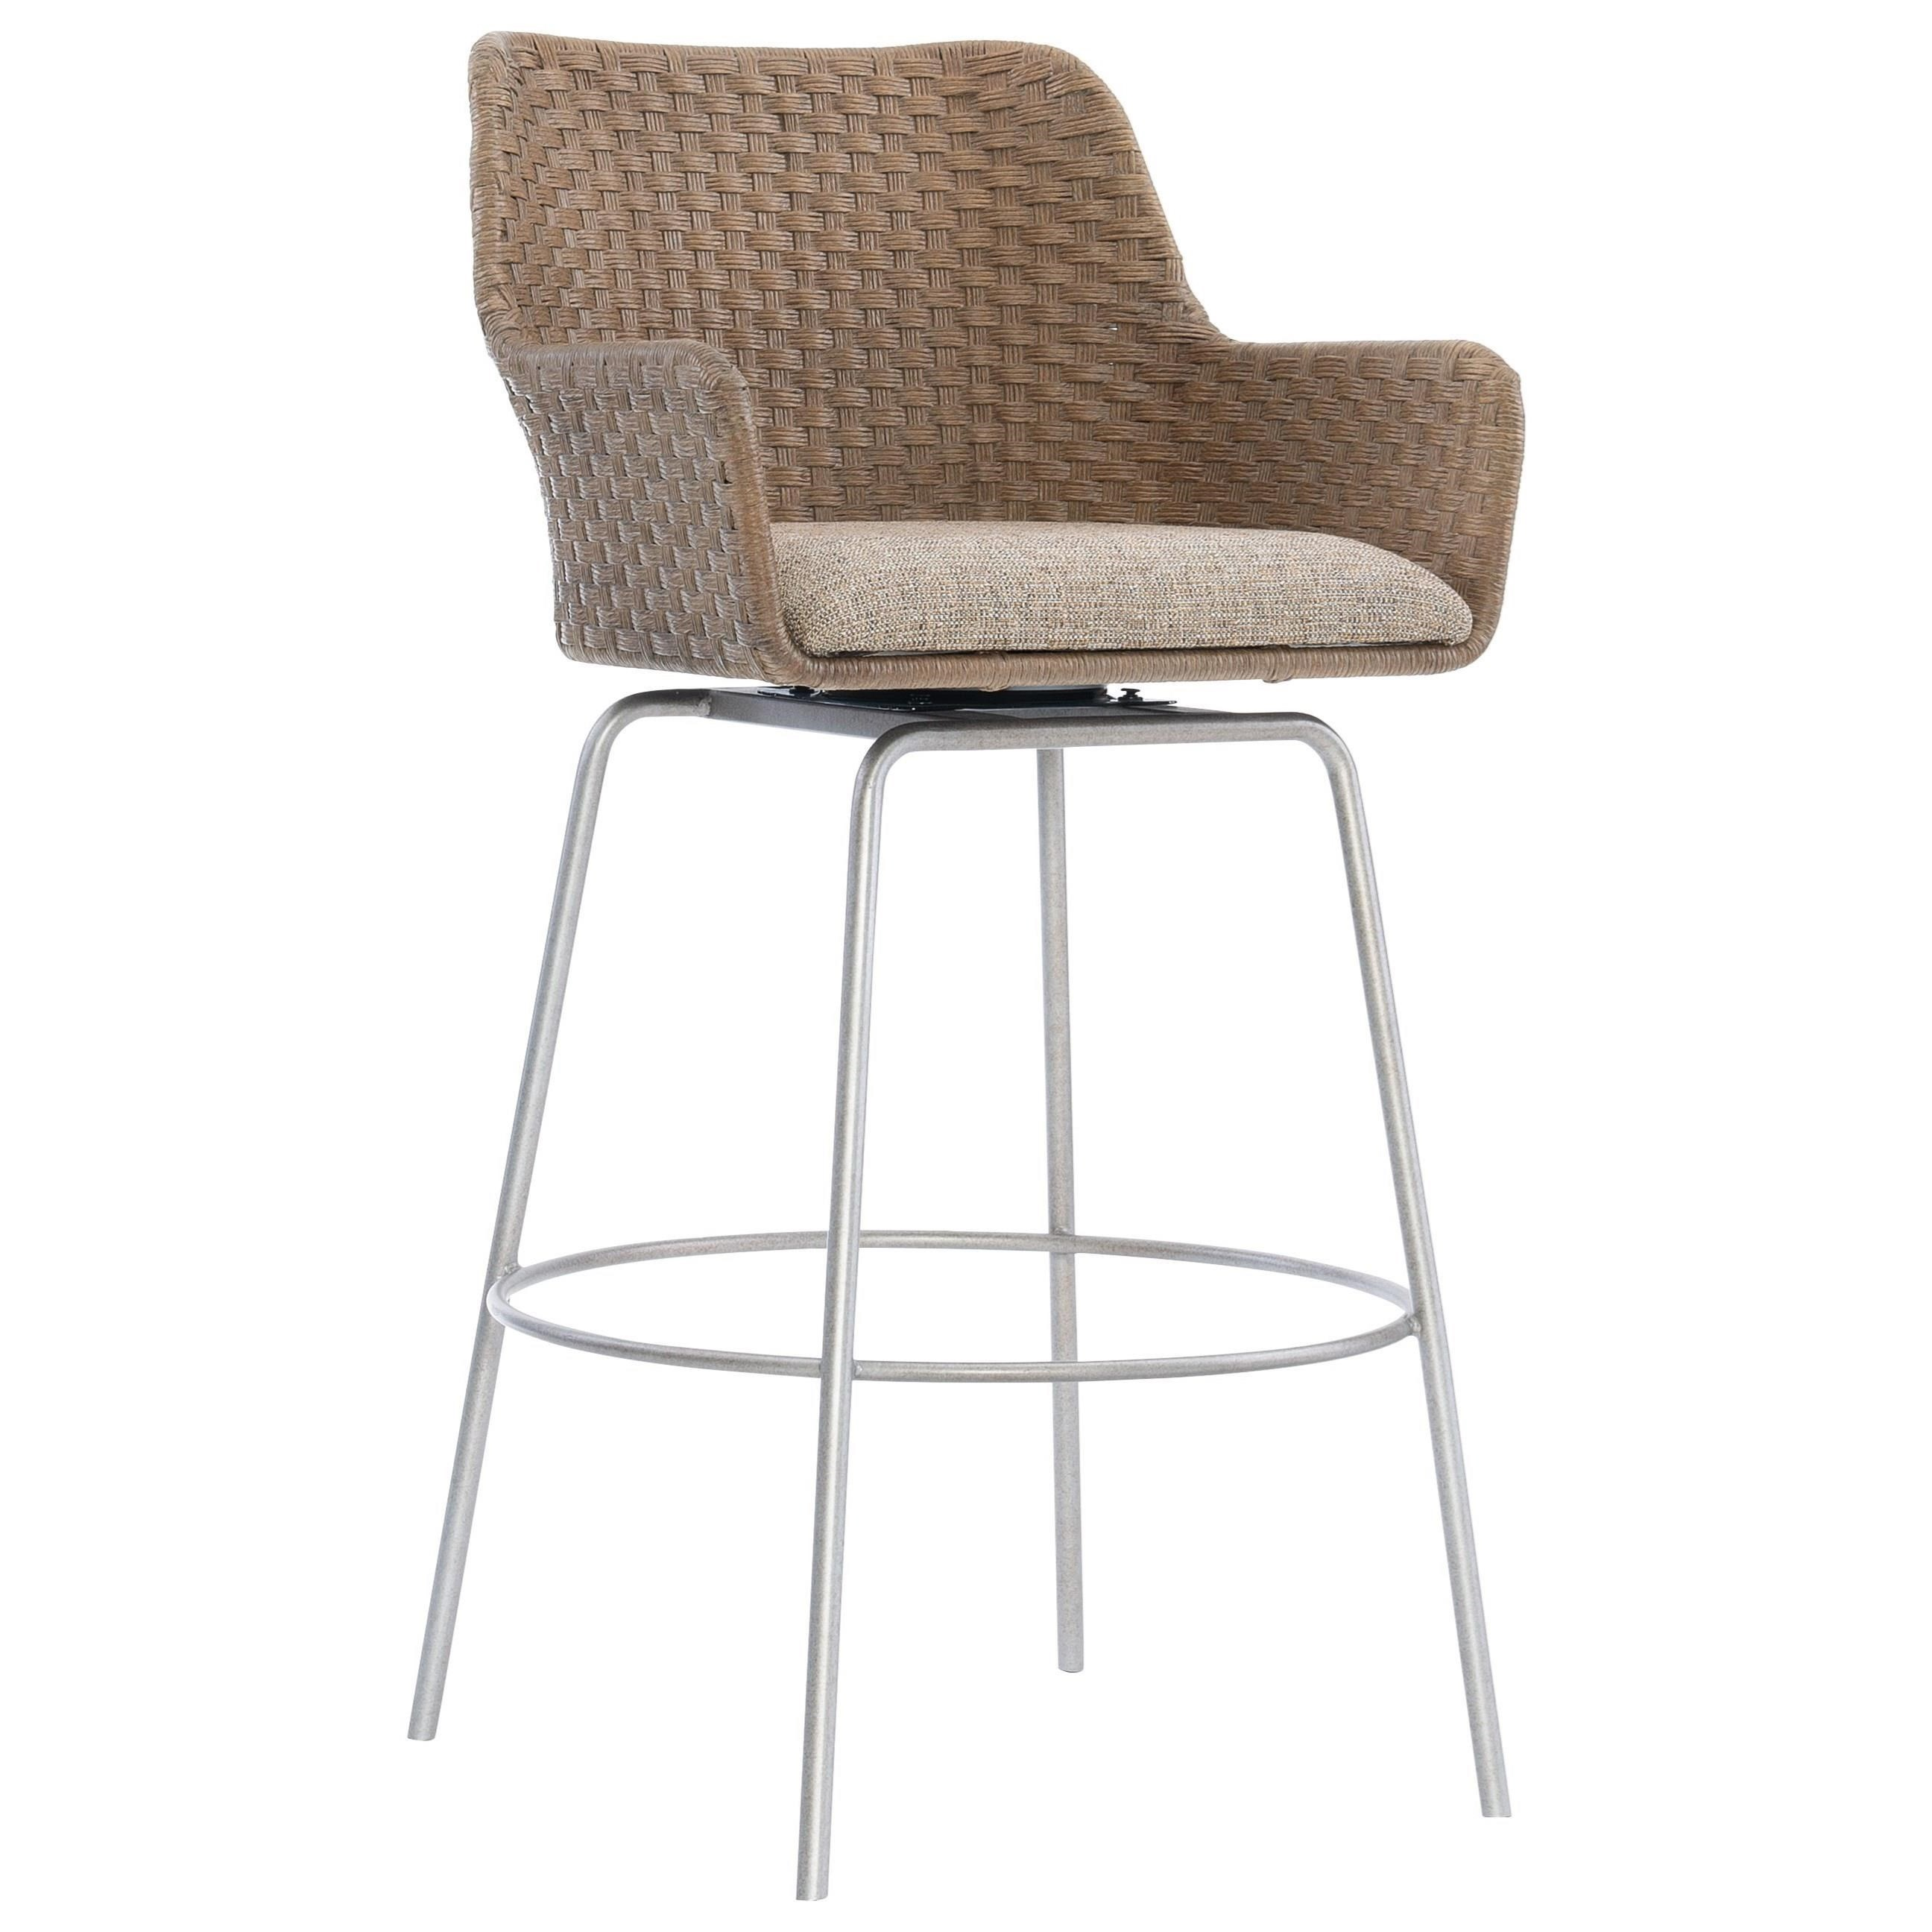 Loft - Logan Square Meade Swivel Bar Stool by Bernhardt at Baer's Furniture